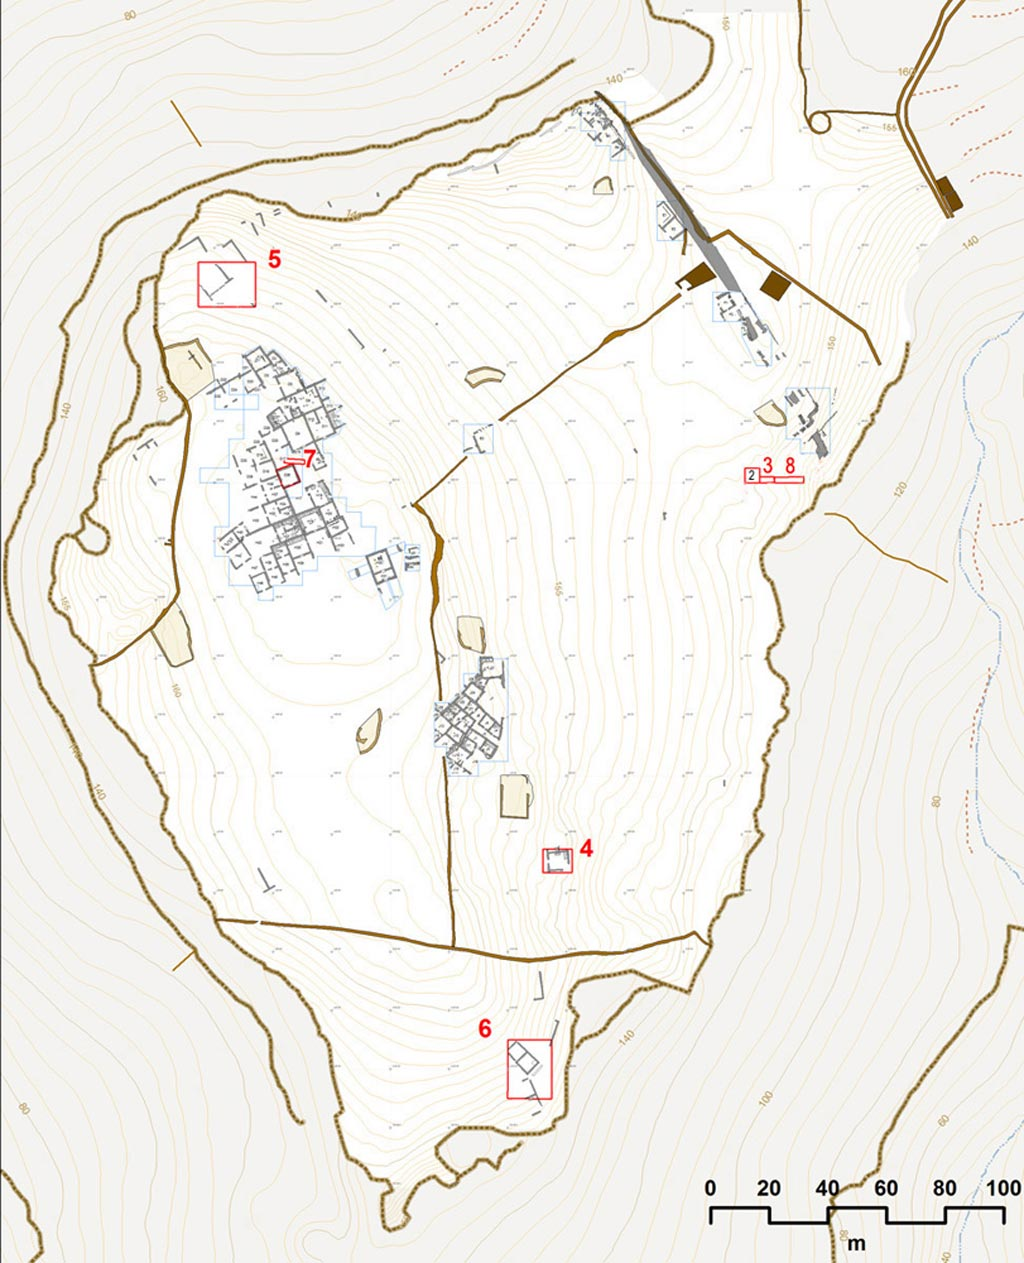 The plan showing the areas being excavated at Zagora in 2014